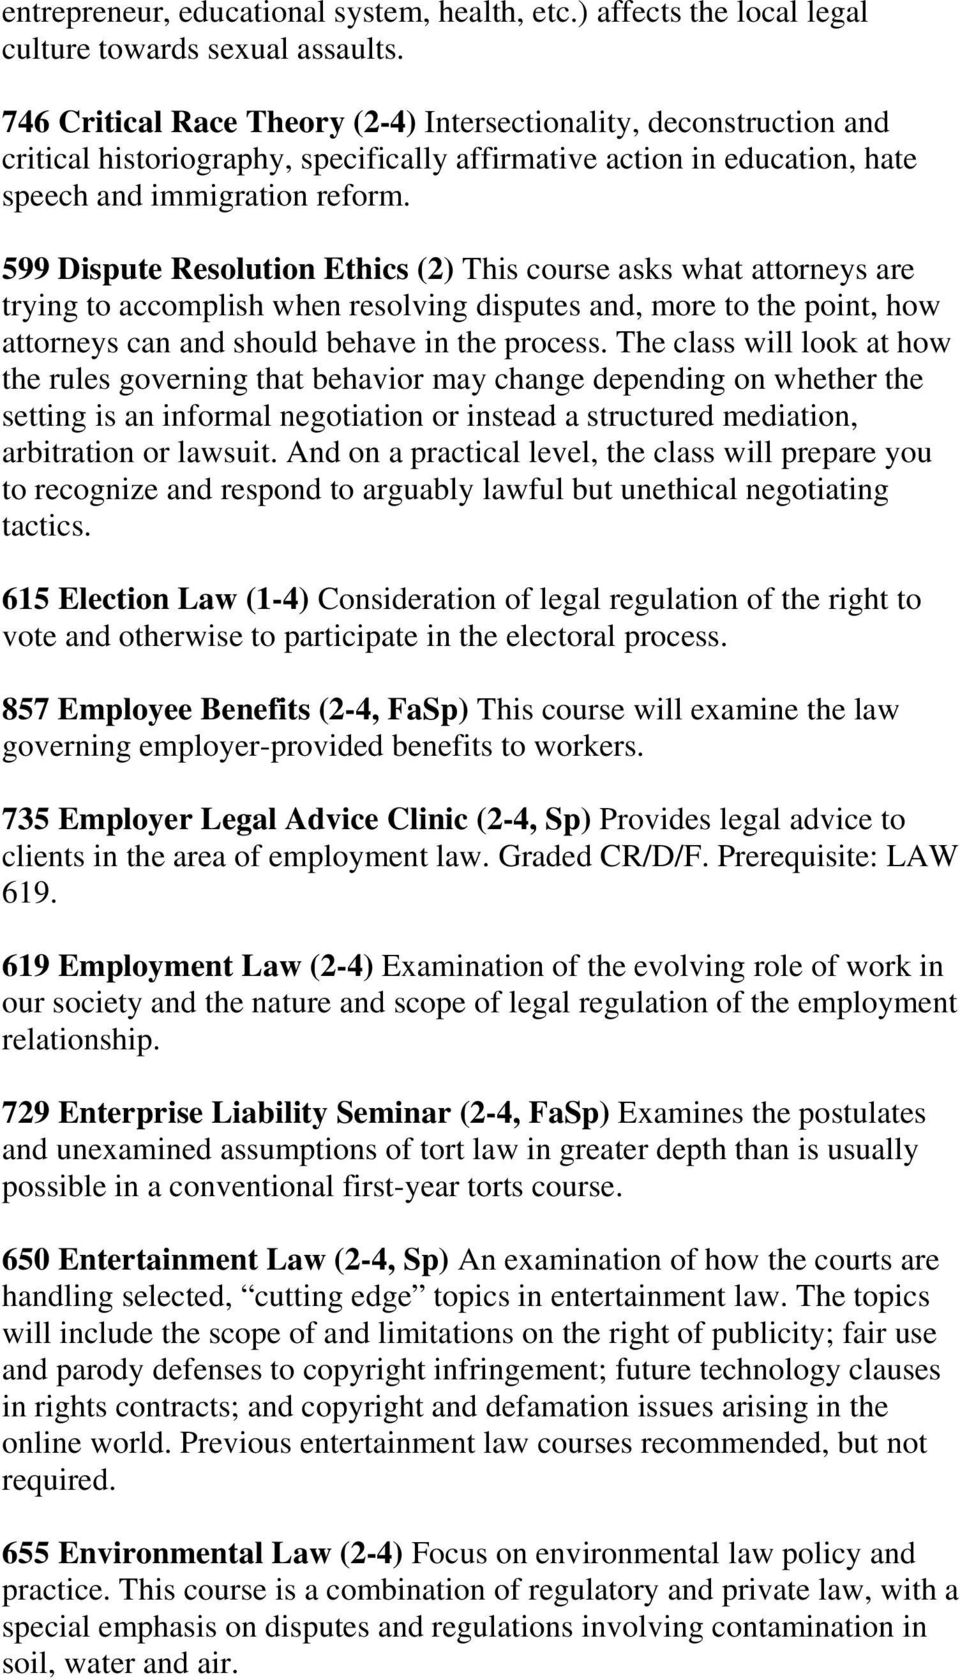 599 Dispute Resolution Ethics (2) This course asks what attorneys are trying to accomplish when resolving disputes and, more to the point, how attorneys can and should behave in the process.